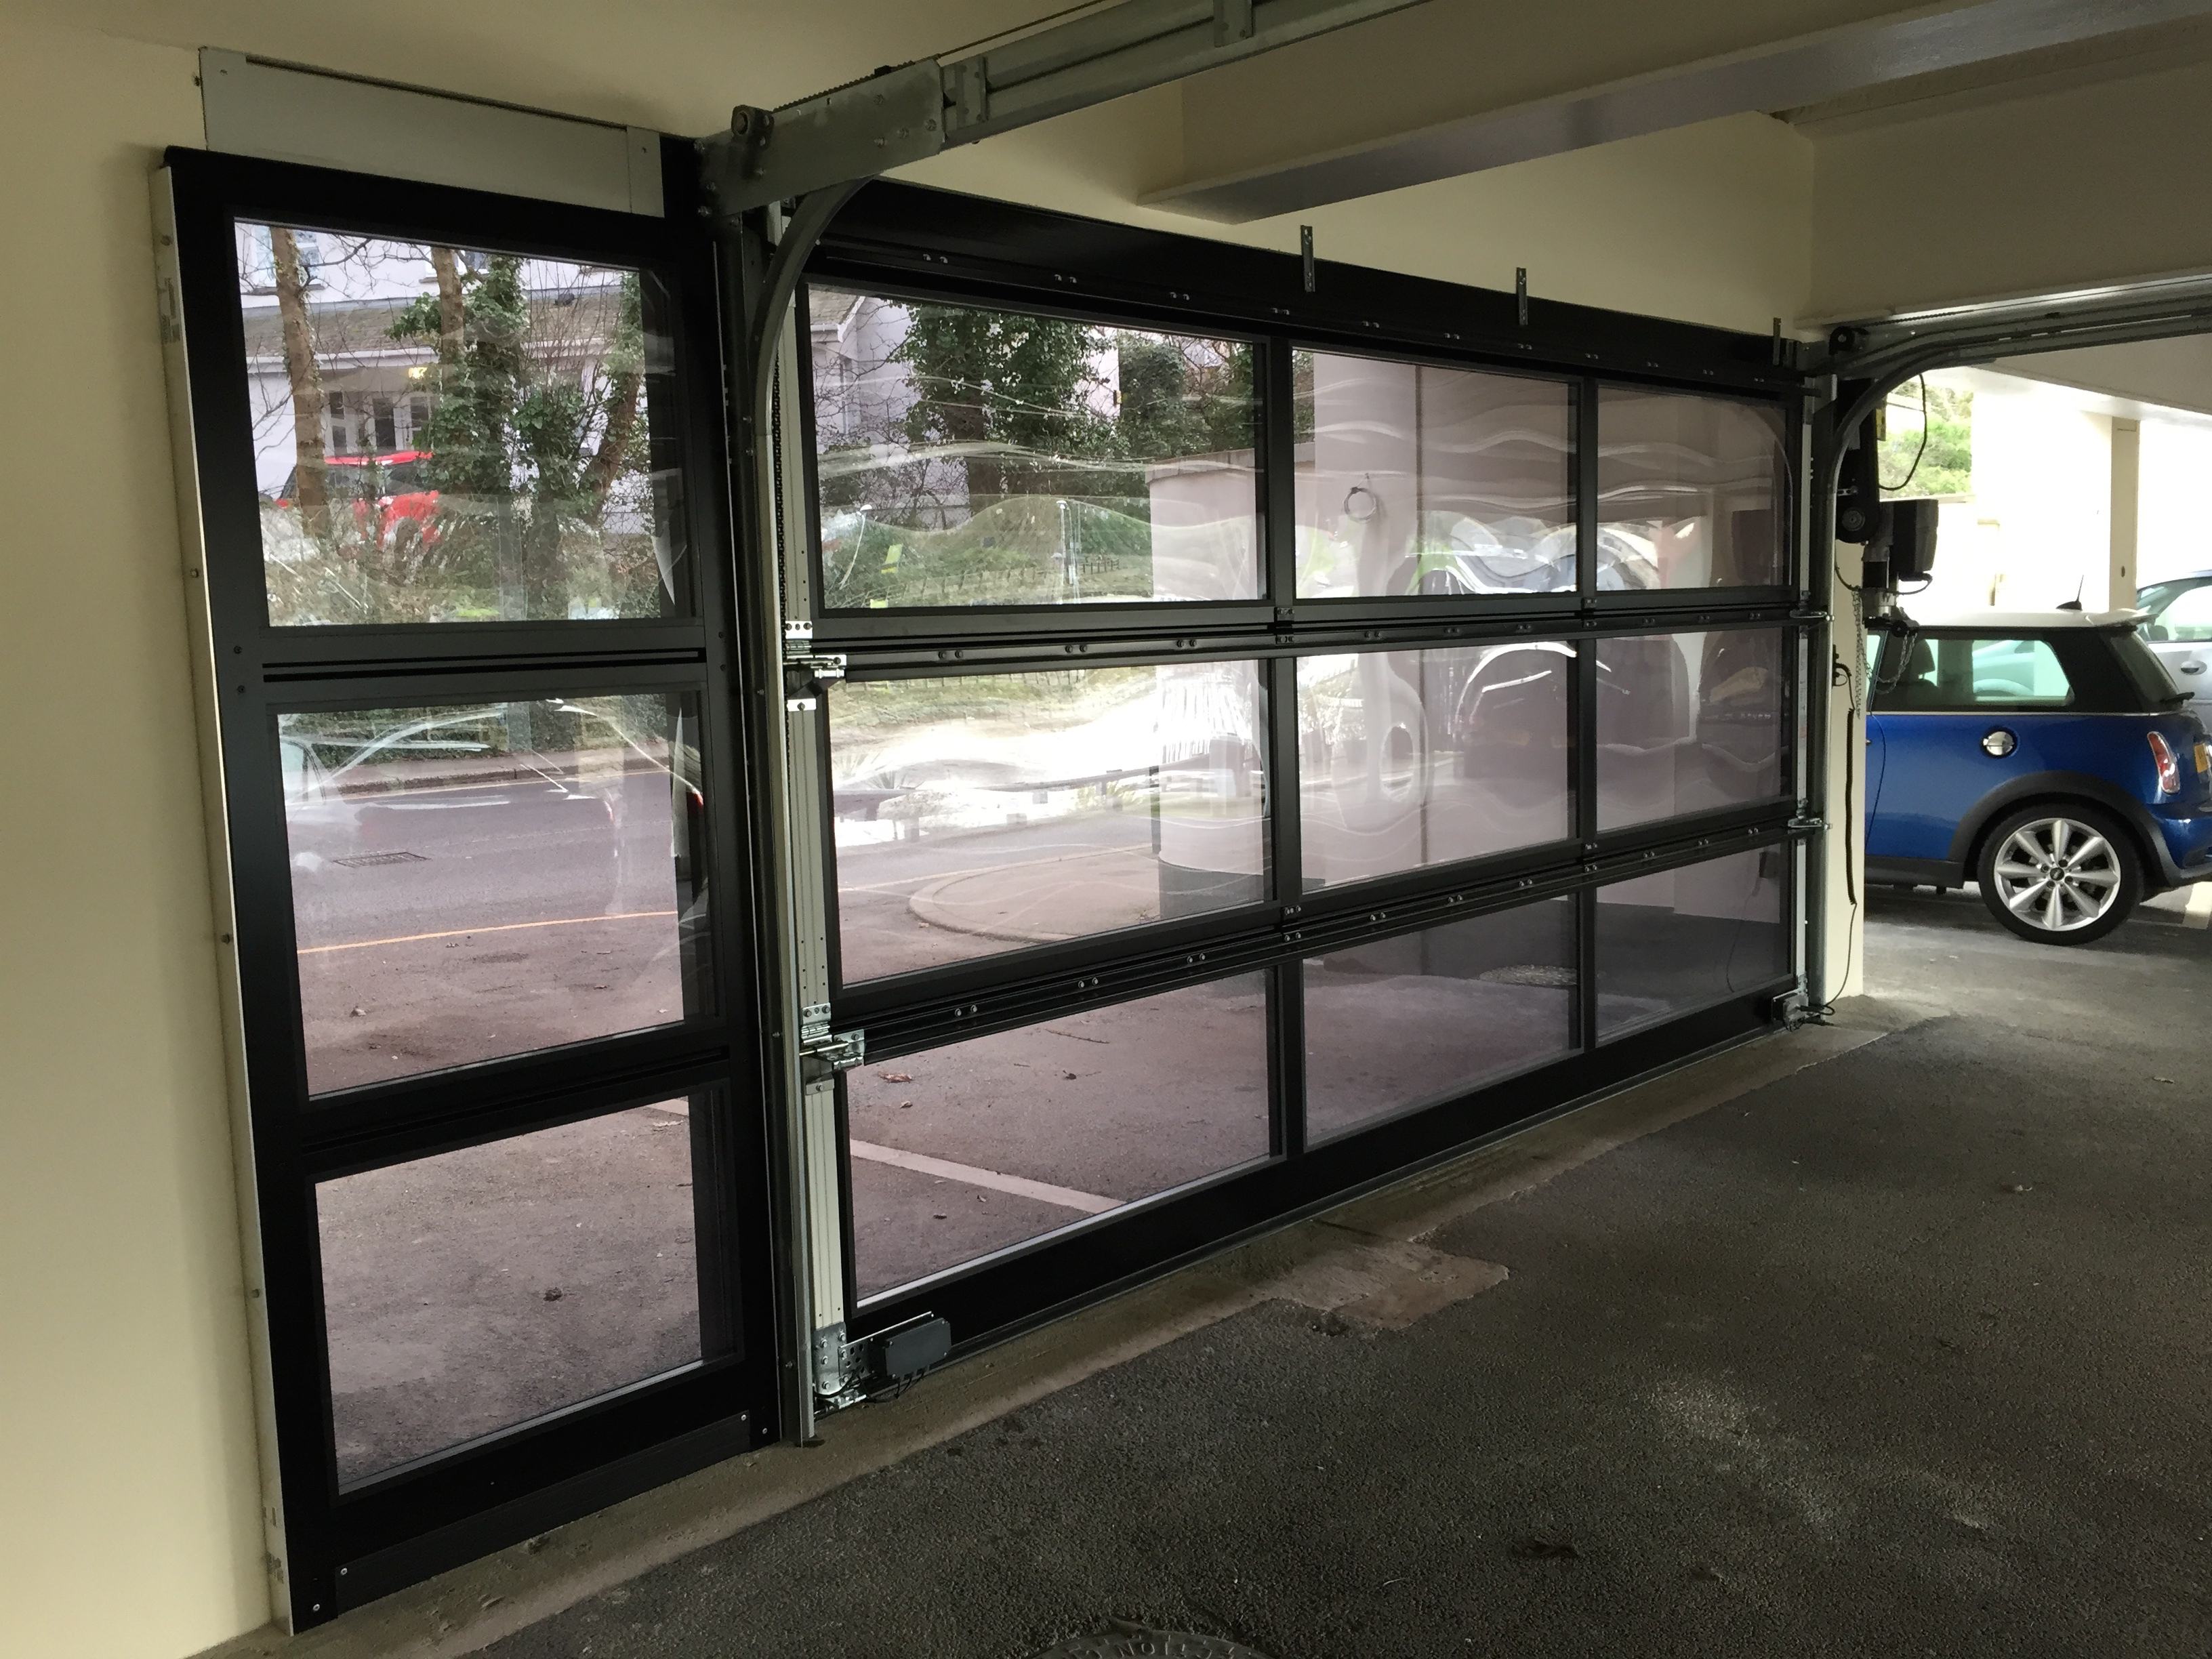 Newly Installed Hormann Alr Vitraplan Sectional Garage